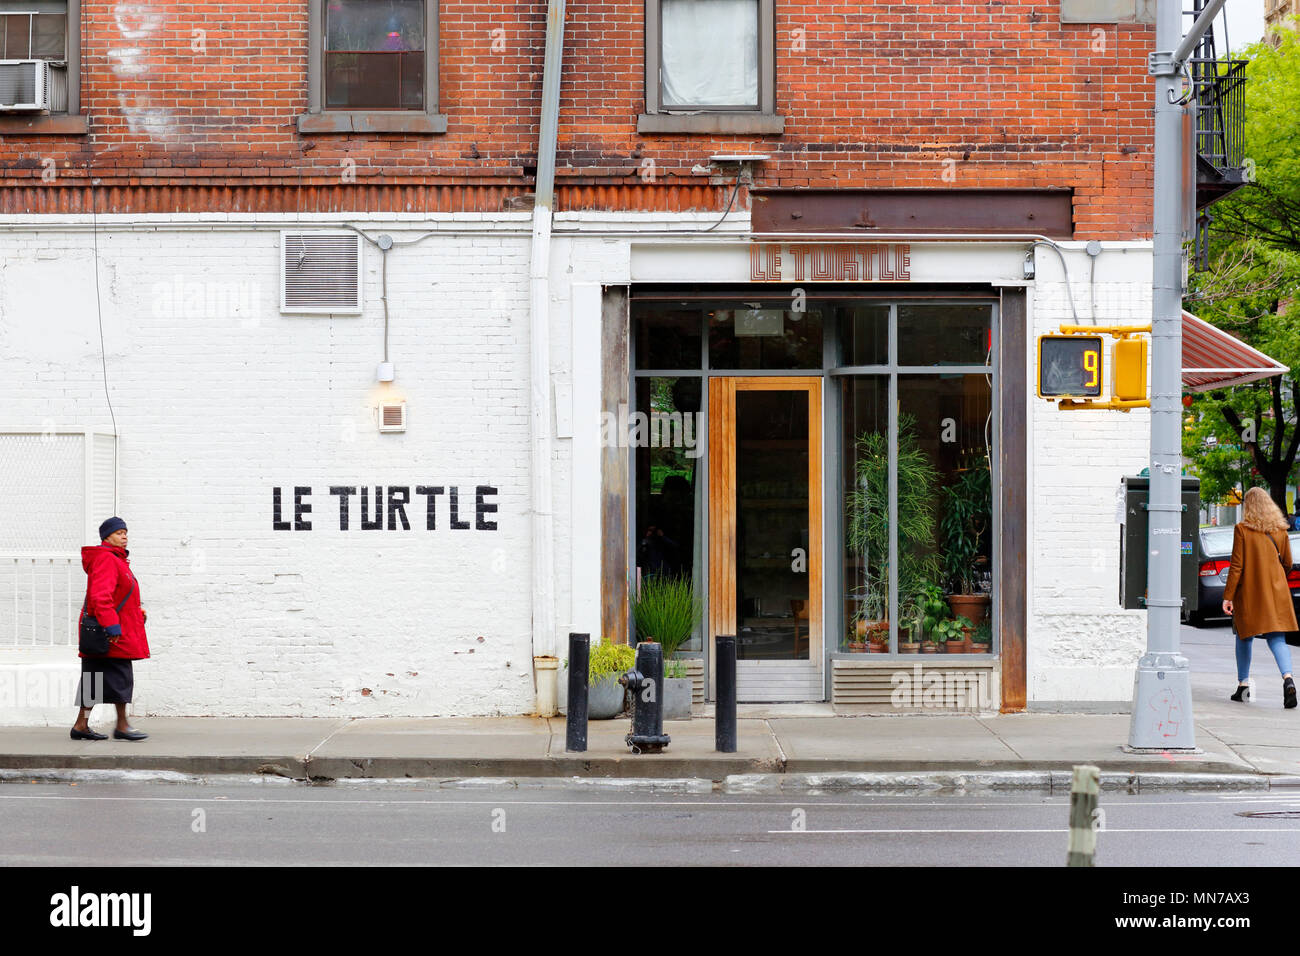 Le Turtle, 177 Chrystie St, New York, NY - Stock Image